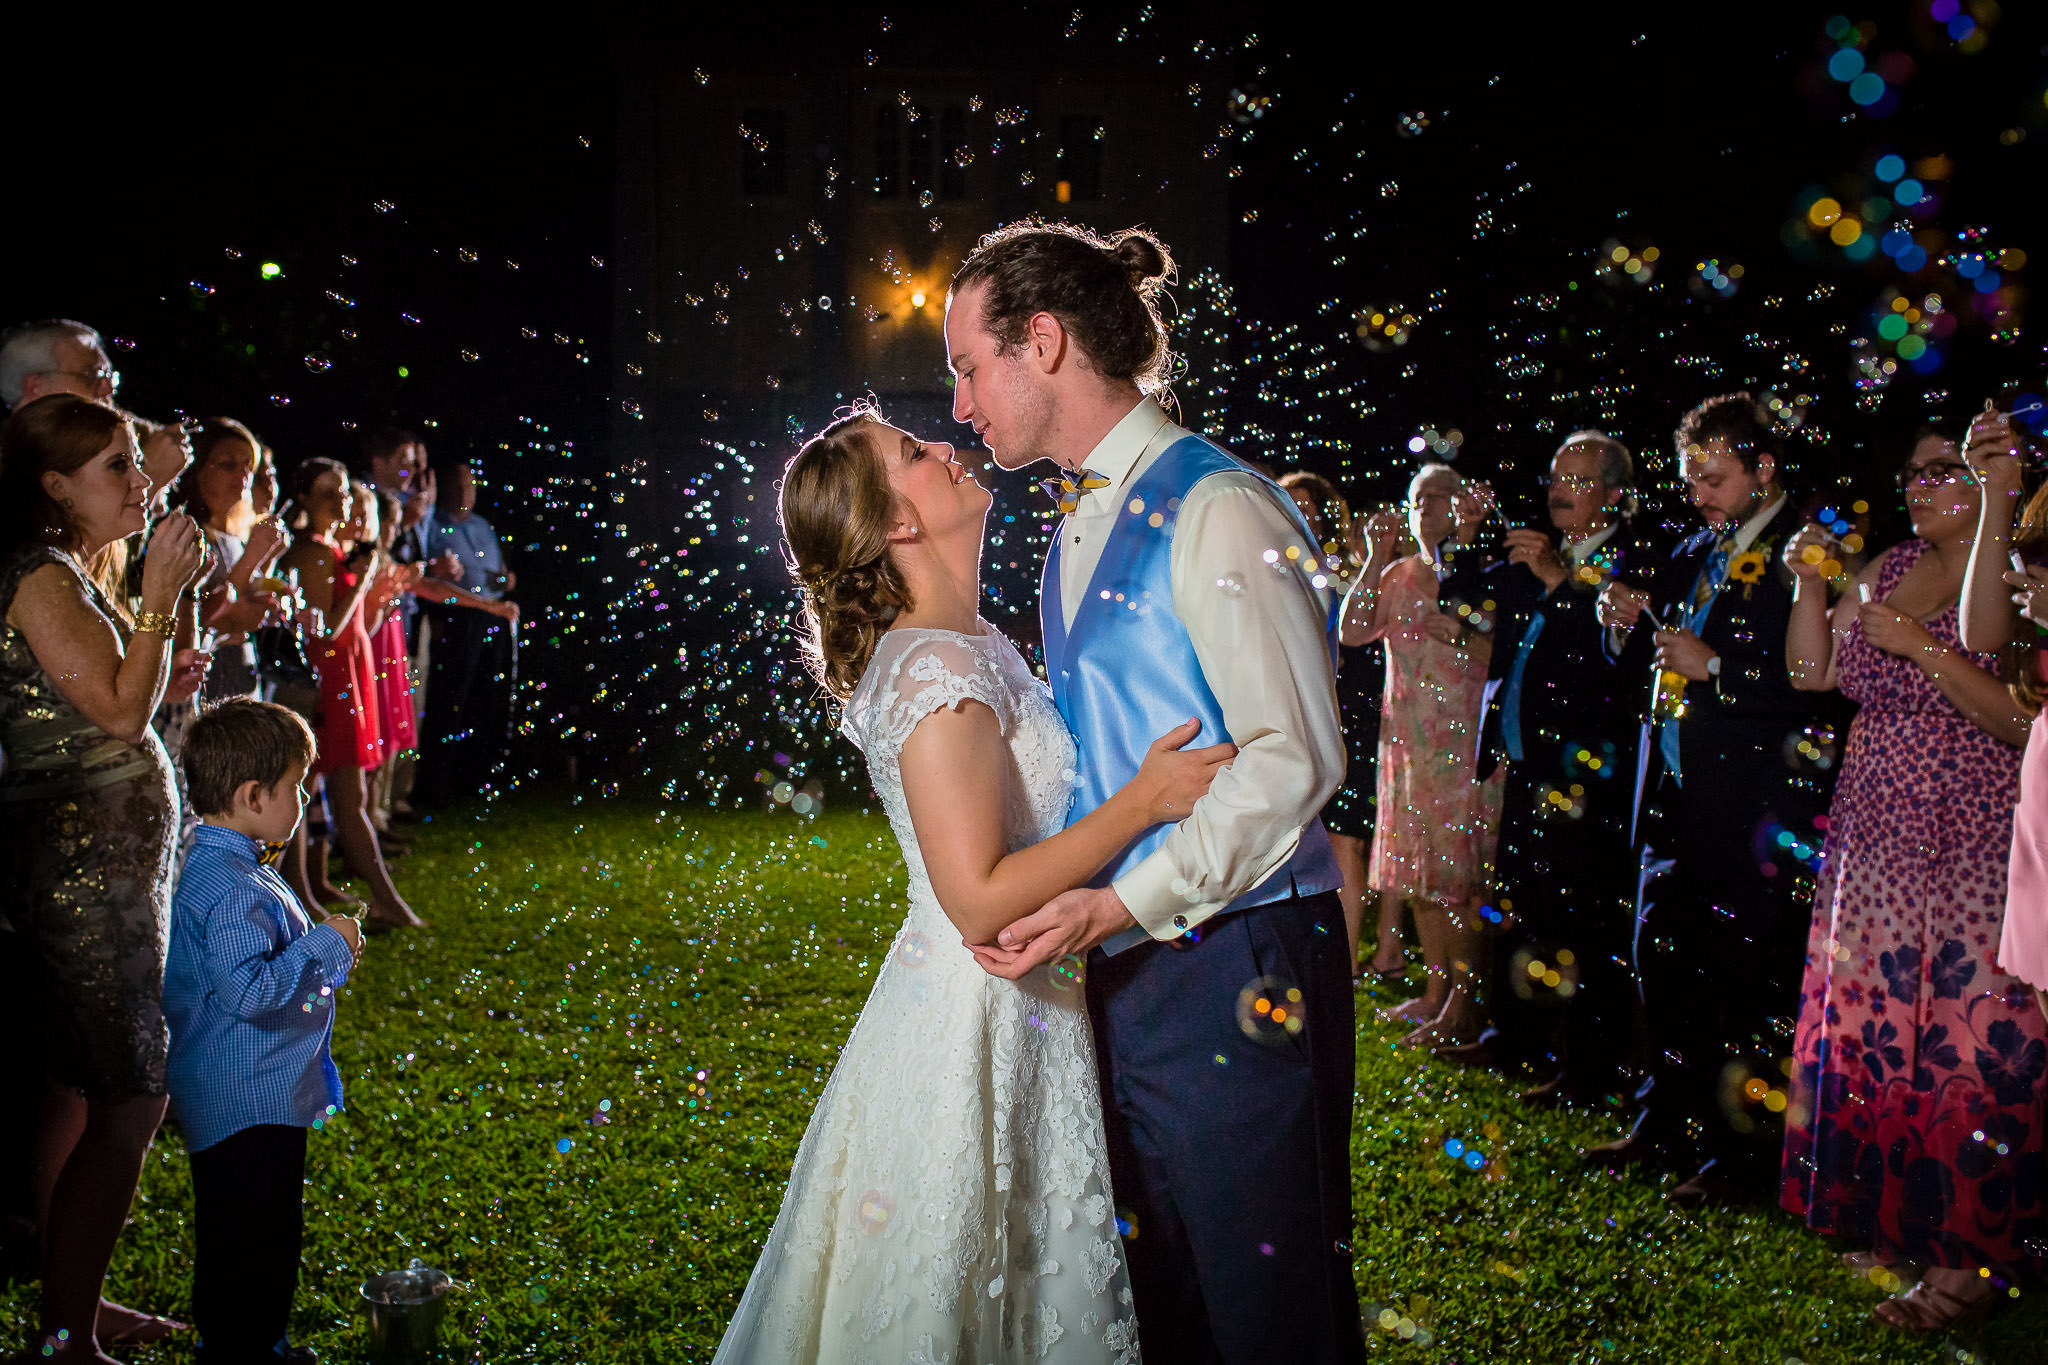 One of the best wedding photographers in Greenville SC photo of a bride and groom's bubble exit